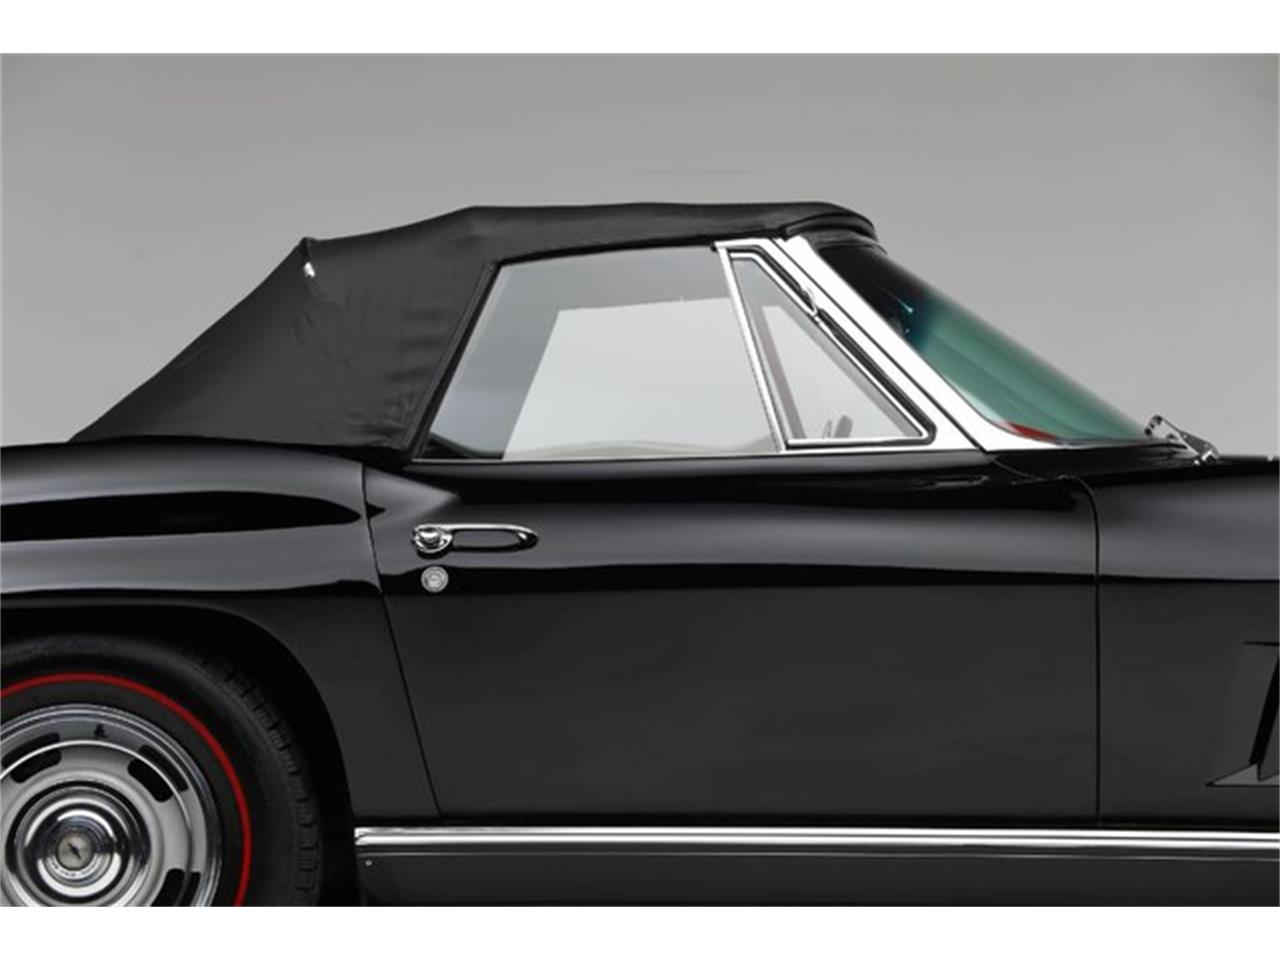 Large Picture of 1967 Chevrolet Corvette located in Clifton Park New York Auction Vehicle Offered by Prestige Motor Car Co. - PU42